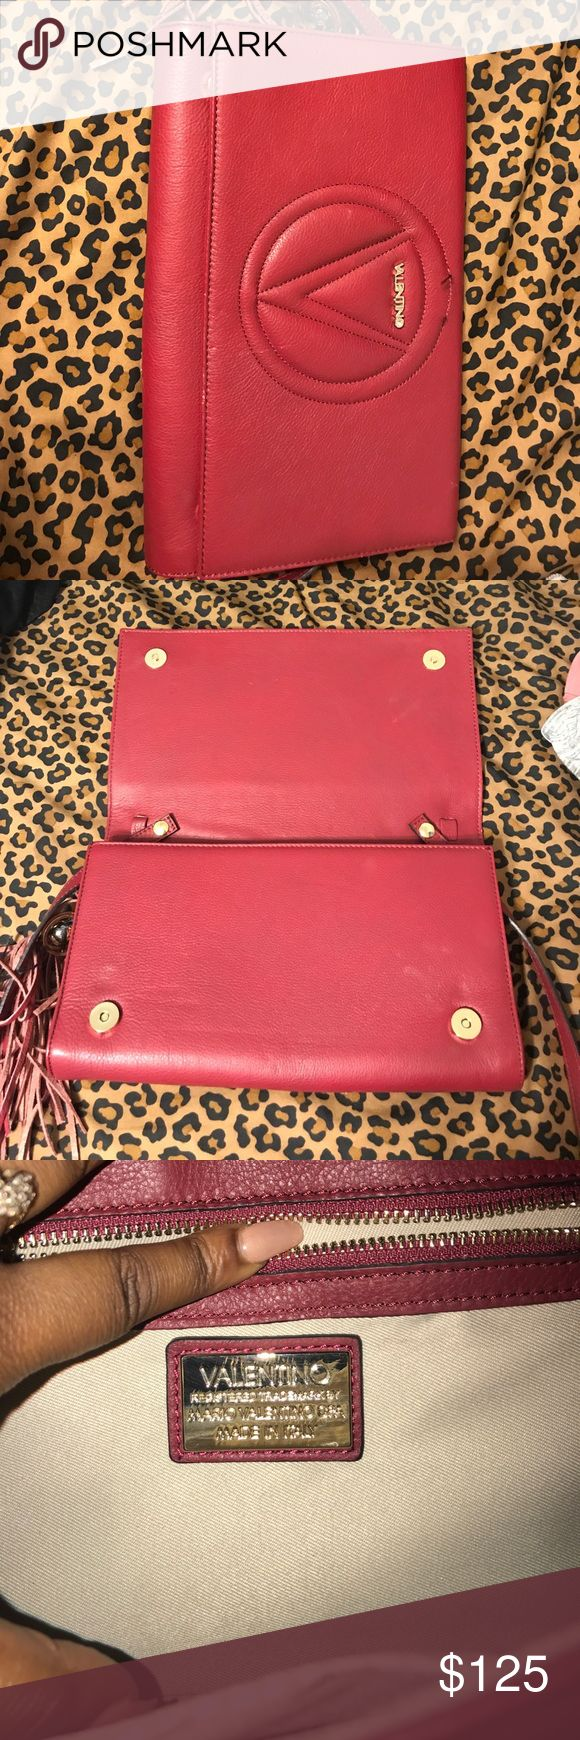 Valentino Mario Valentino Lena Convertible Clutch Valentino by Mario Valentino Women's Lena Convertible Leather Clutch - Poppy Red .   a little wear & tear around logo . Valentino Bags Clutches & Wristlets